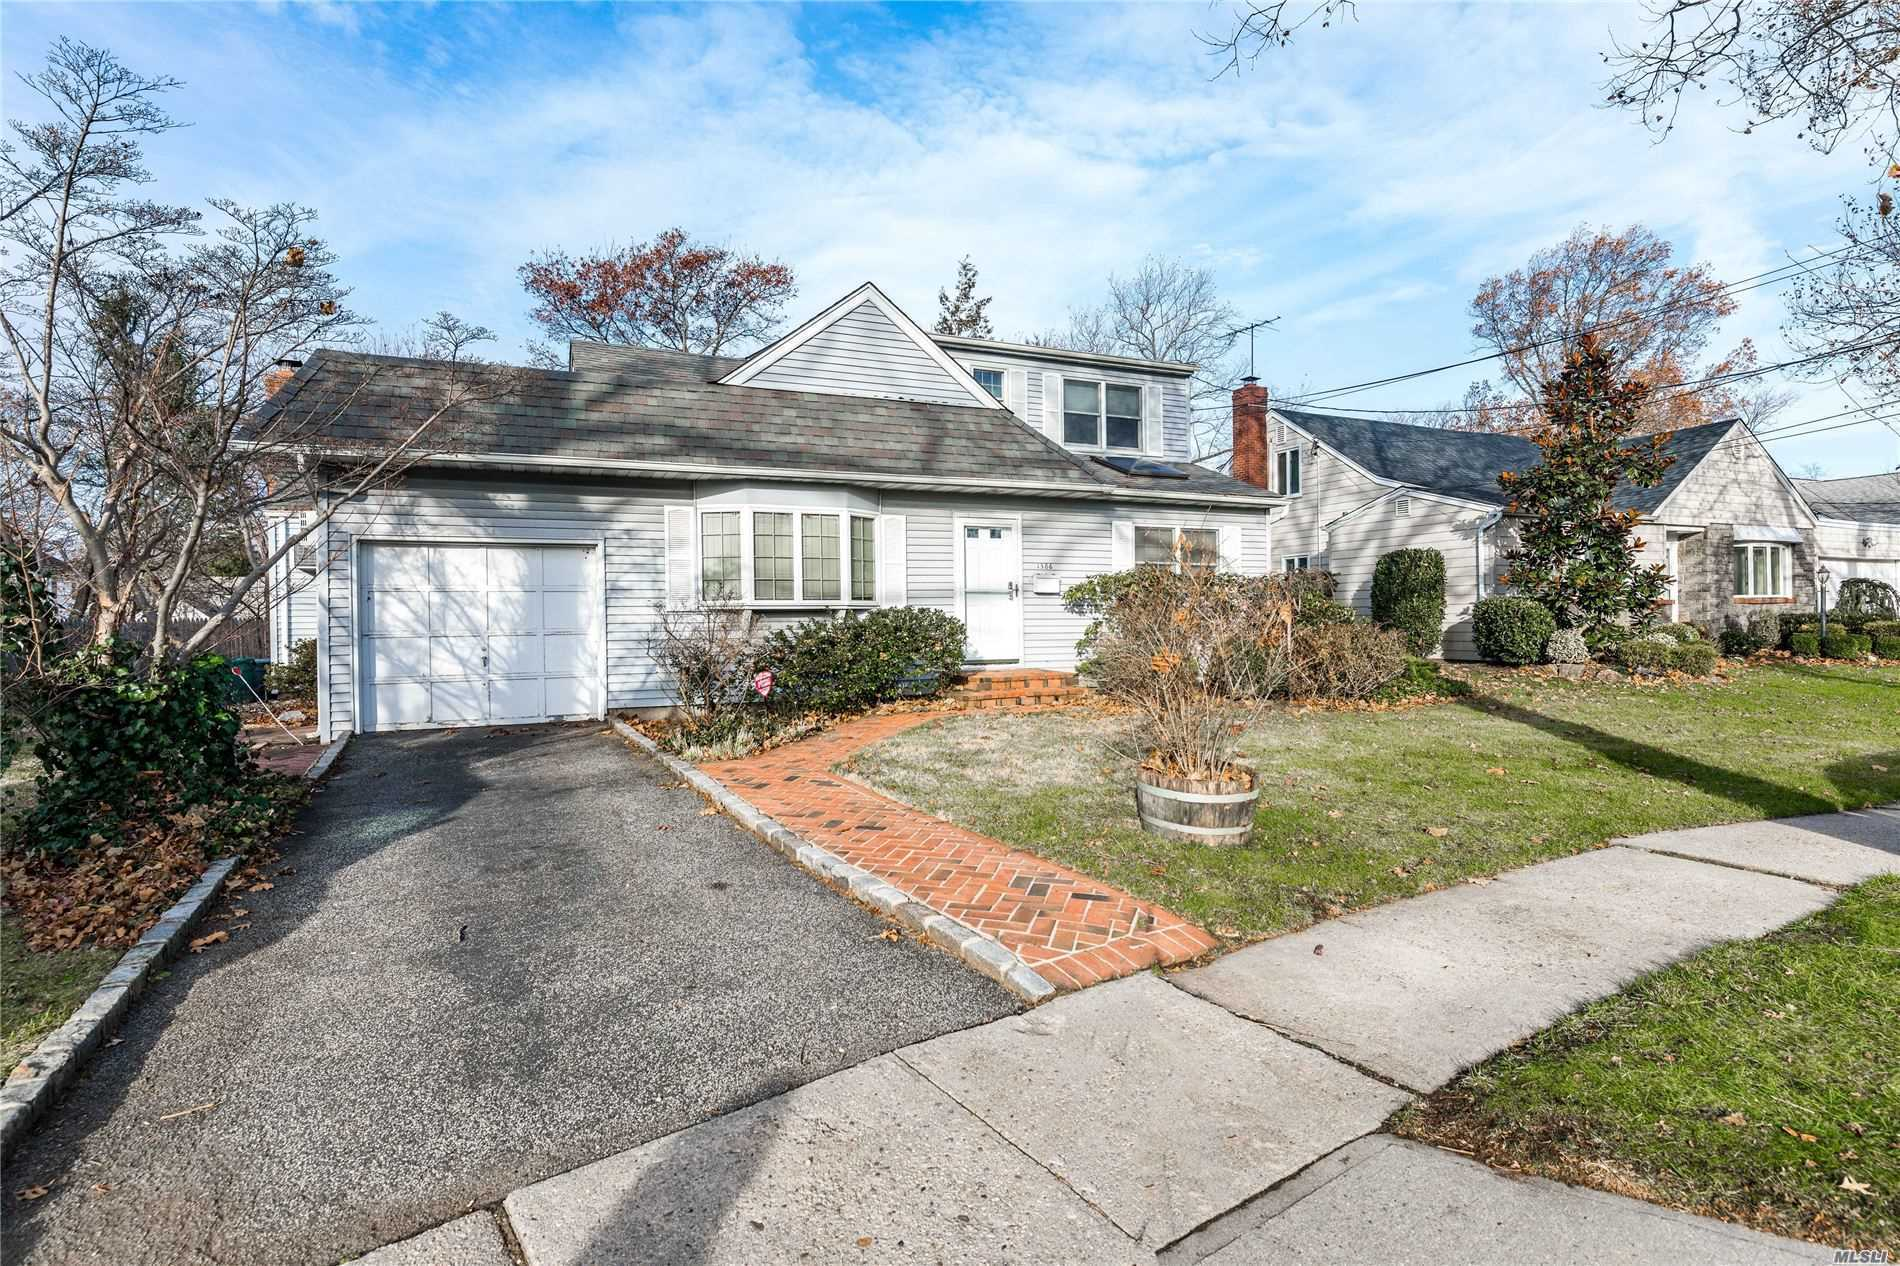 1586 Lakeview Dr - Hewlett, New York